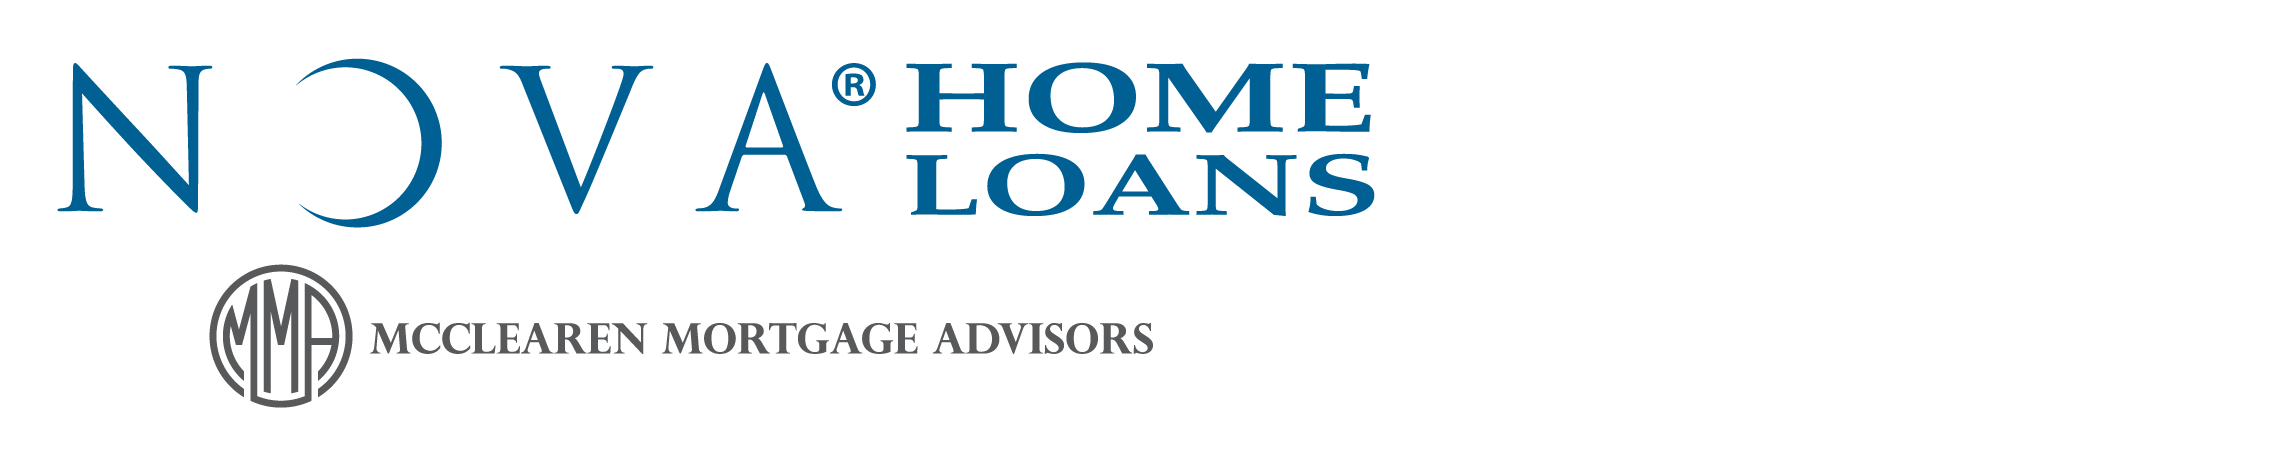 McClearen Mortgage Advisors Logo